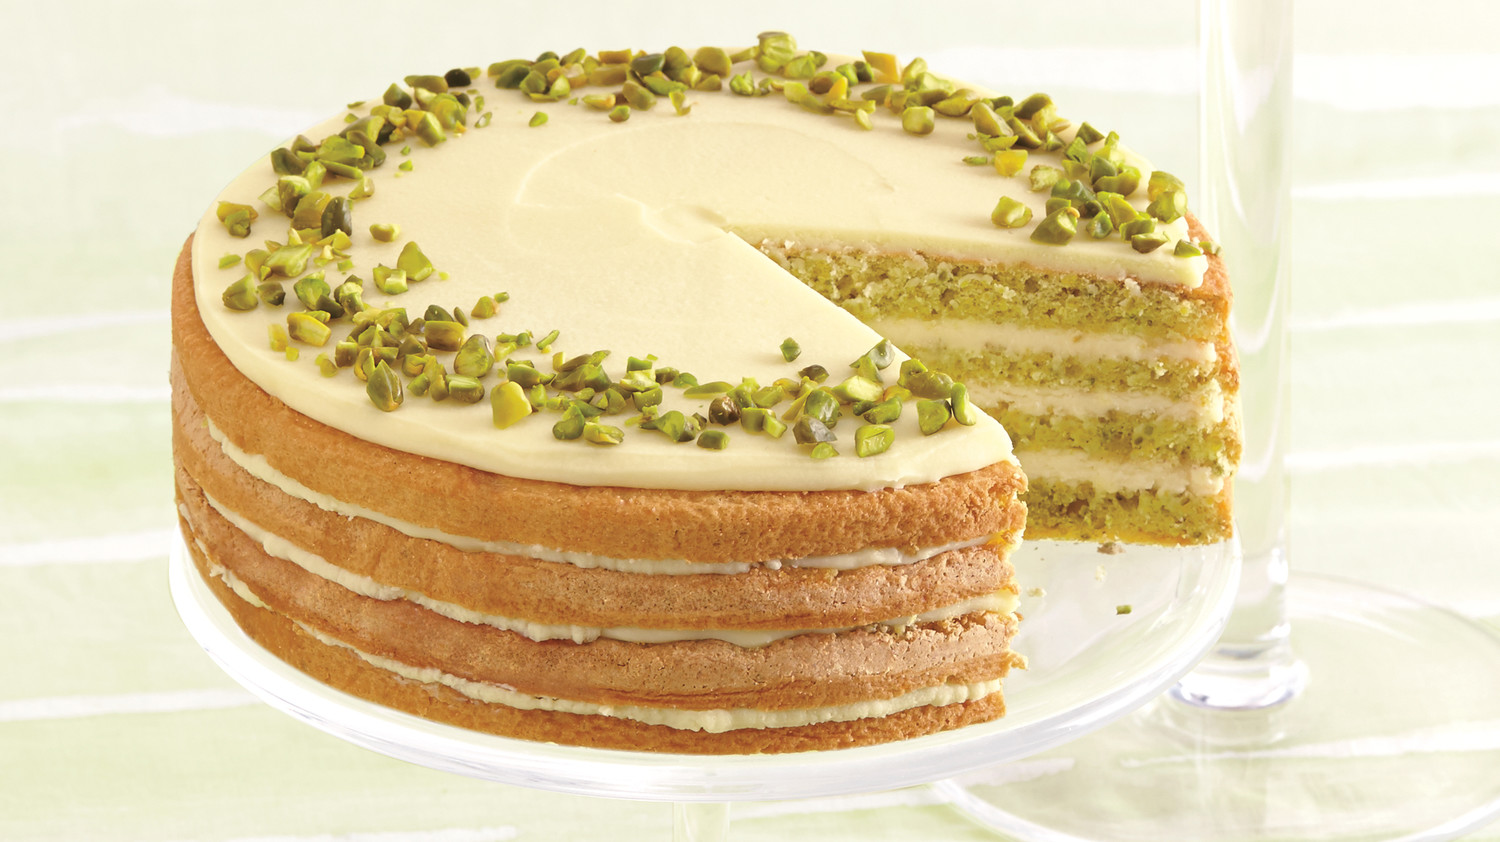 Pistachio Wedding Cake